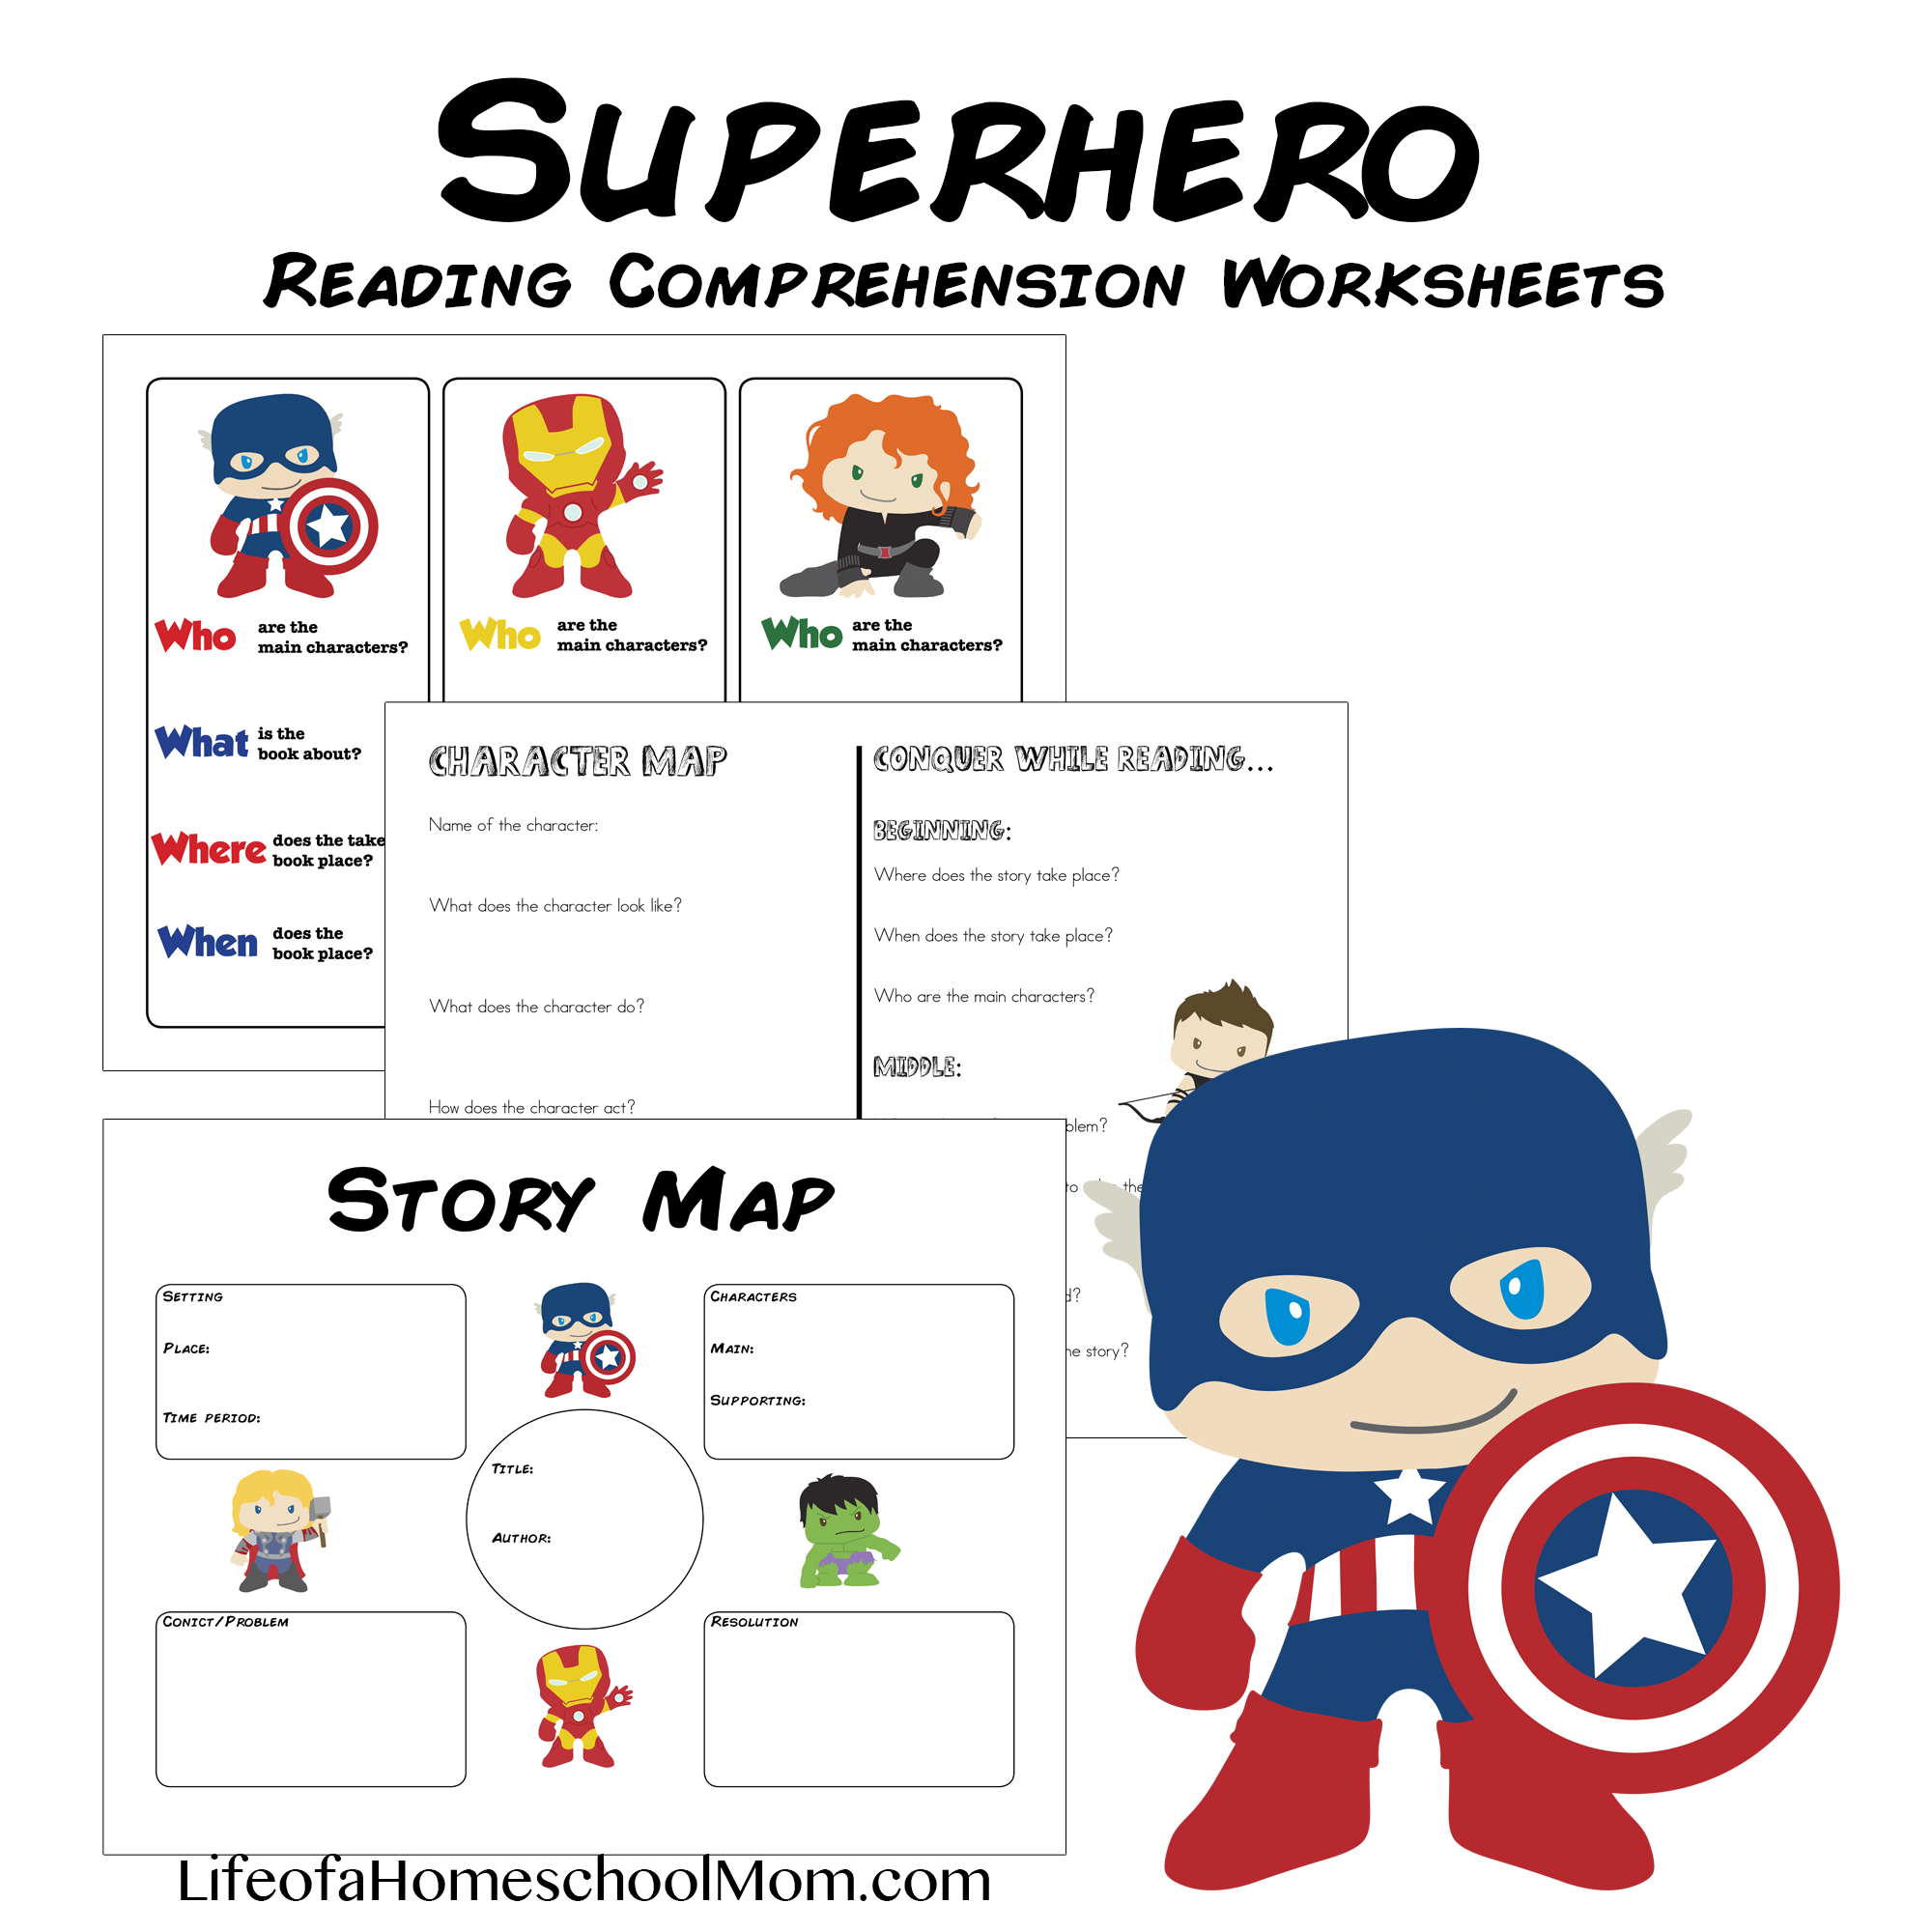 Superhero Reading Comprehension Worksheet Pack